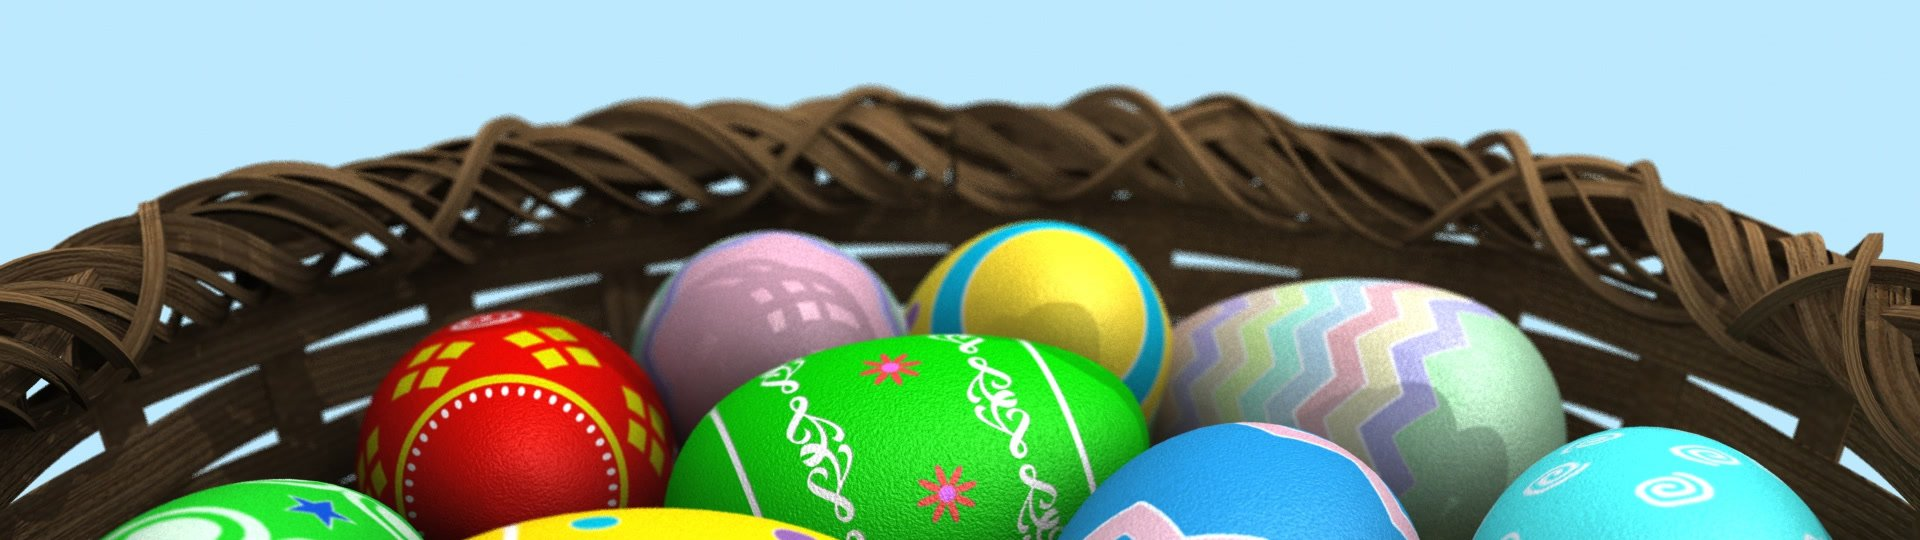 Basket of Easter Eggs | A basket full of colorful Easter eggs rotates in front of the viewer. This animation loops seamlessly. - ID:15296